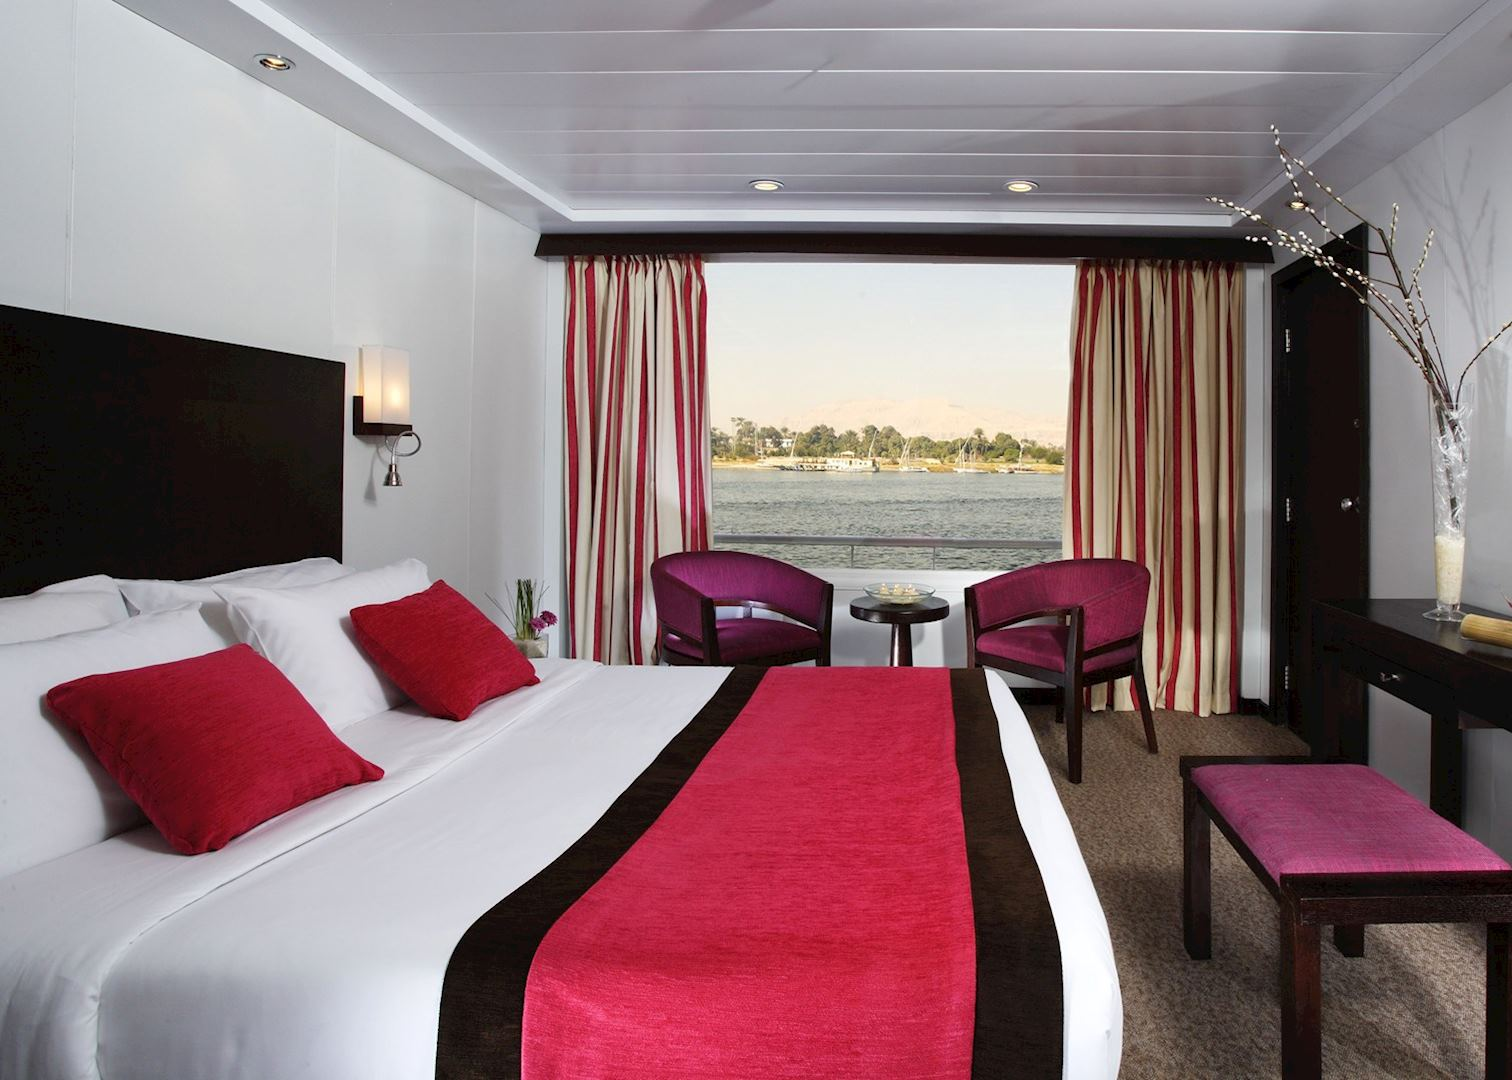 MS Movenpick Royal Lily  Egypt Cruises  Audley Travel